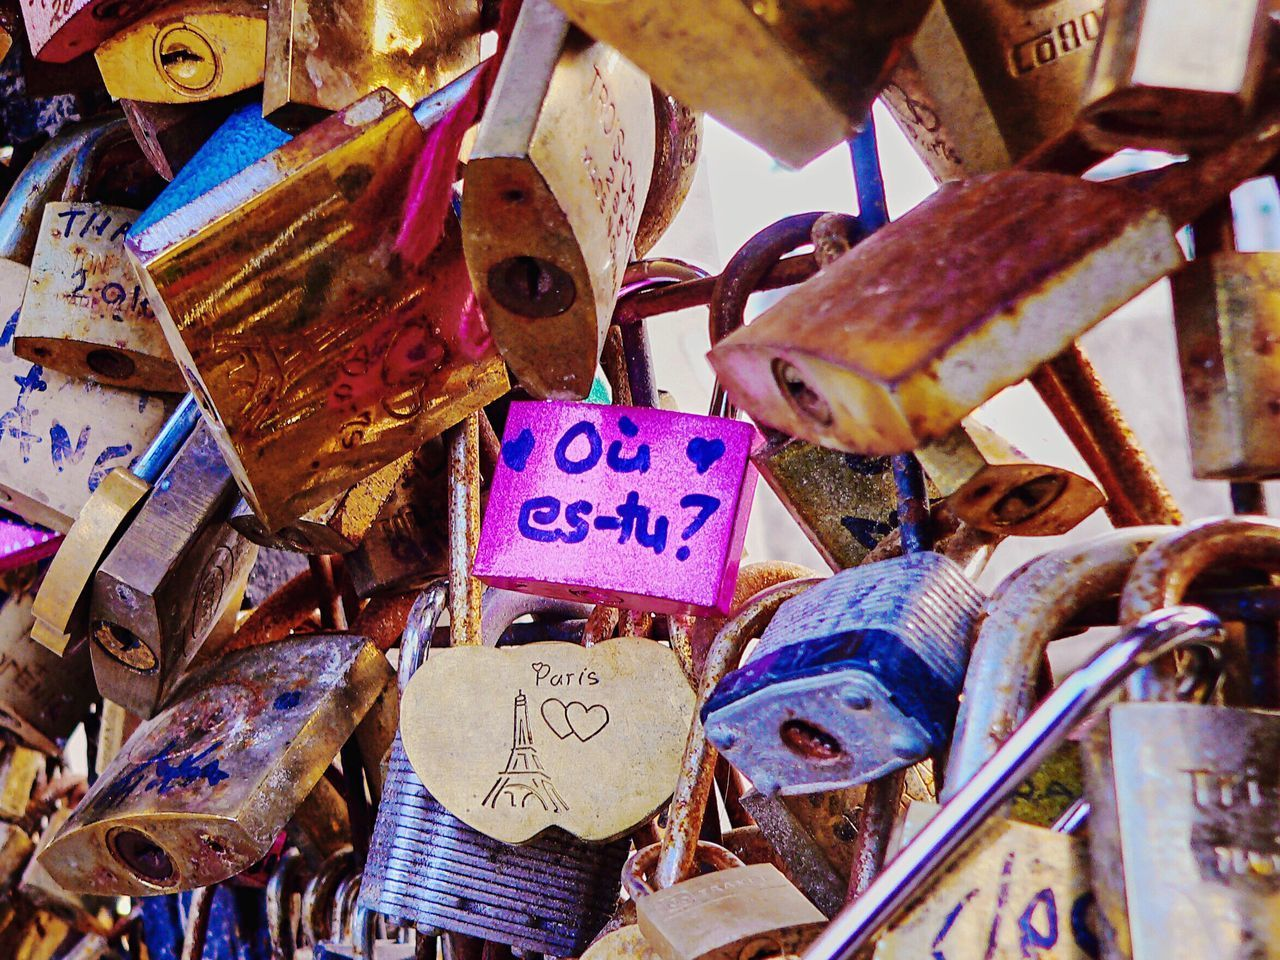 Large Group Of Objects No People Text Variation Outdoors Close-up Day Lock Locks Love Lock Where Are You? Ou Est Tu? Paris Paris Lover Love Bridge Pont Des Arts Millennial Pink